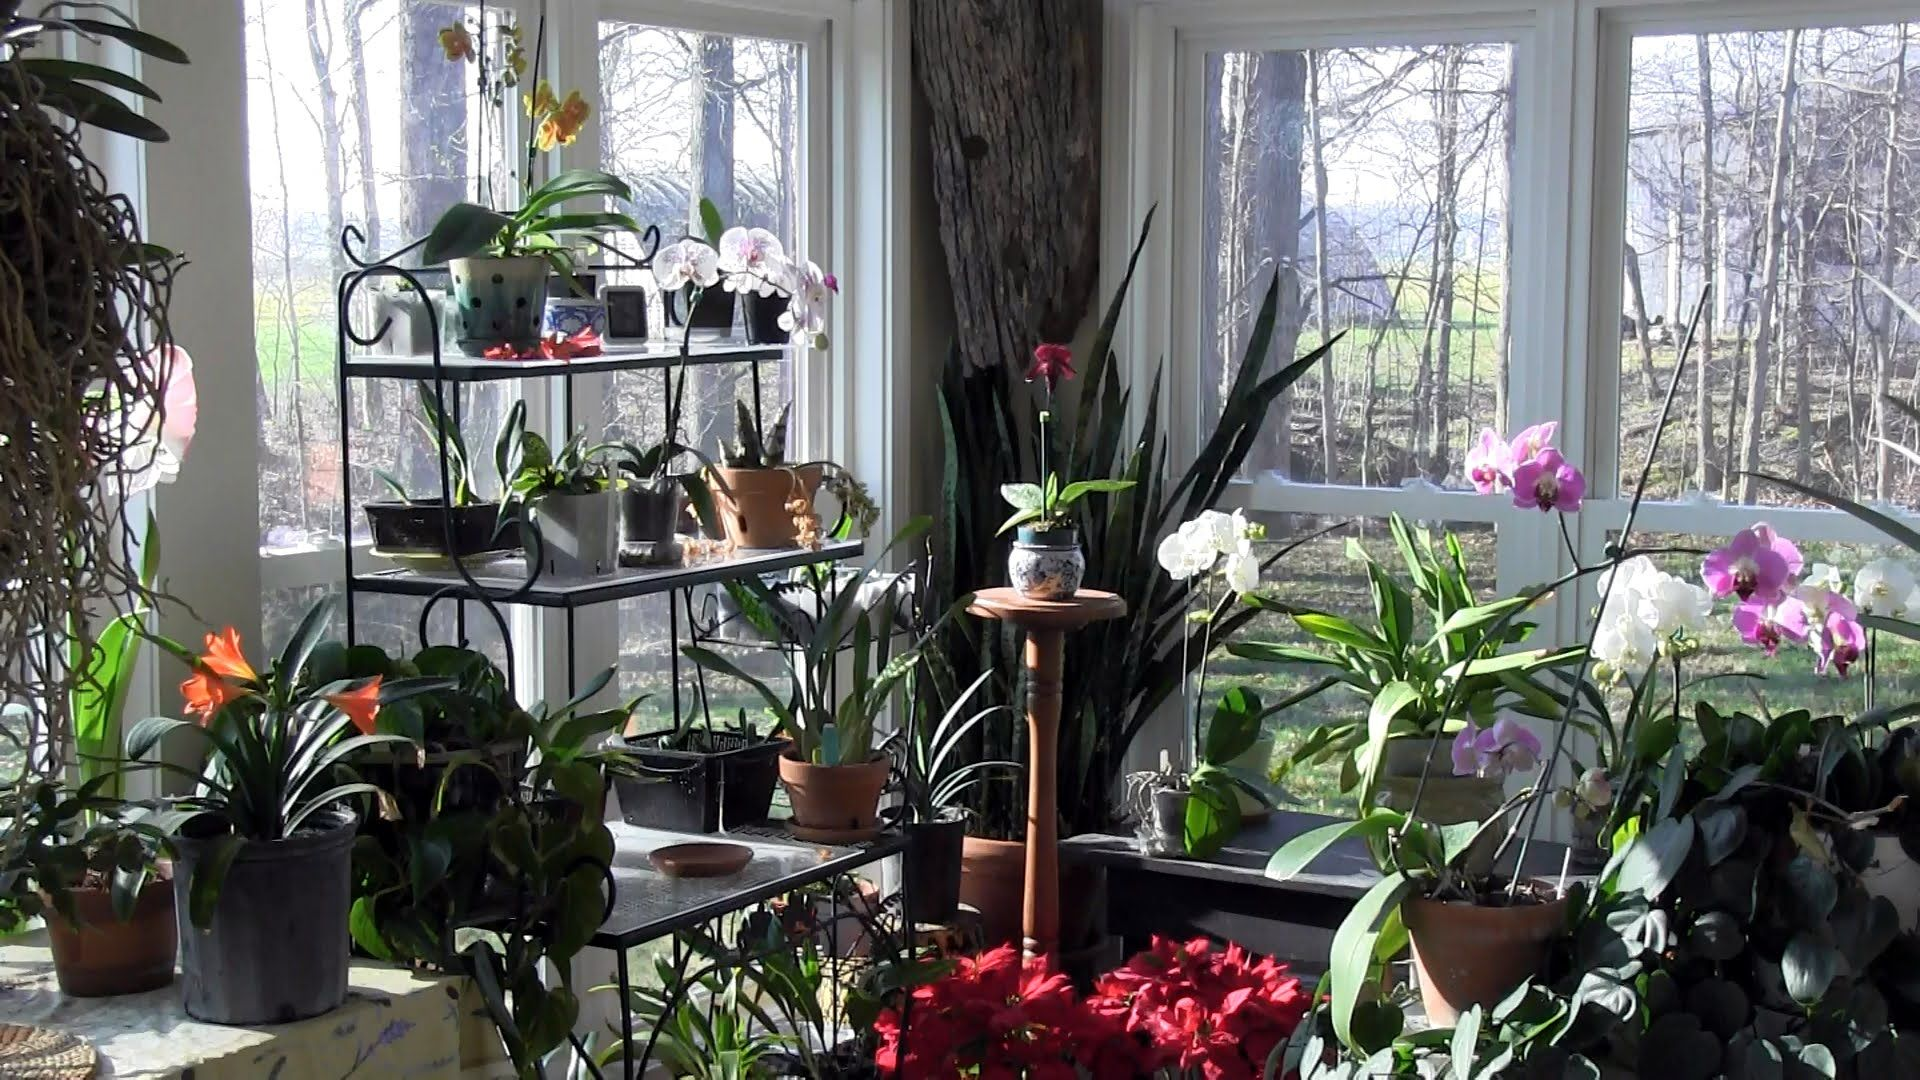 The Sunroom at its Finest: An Indoor Garden in Bloom